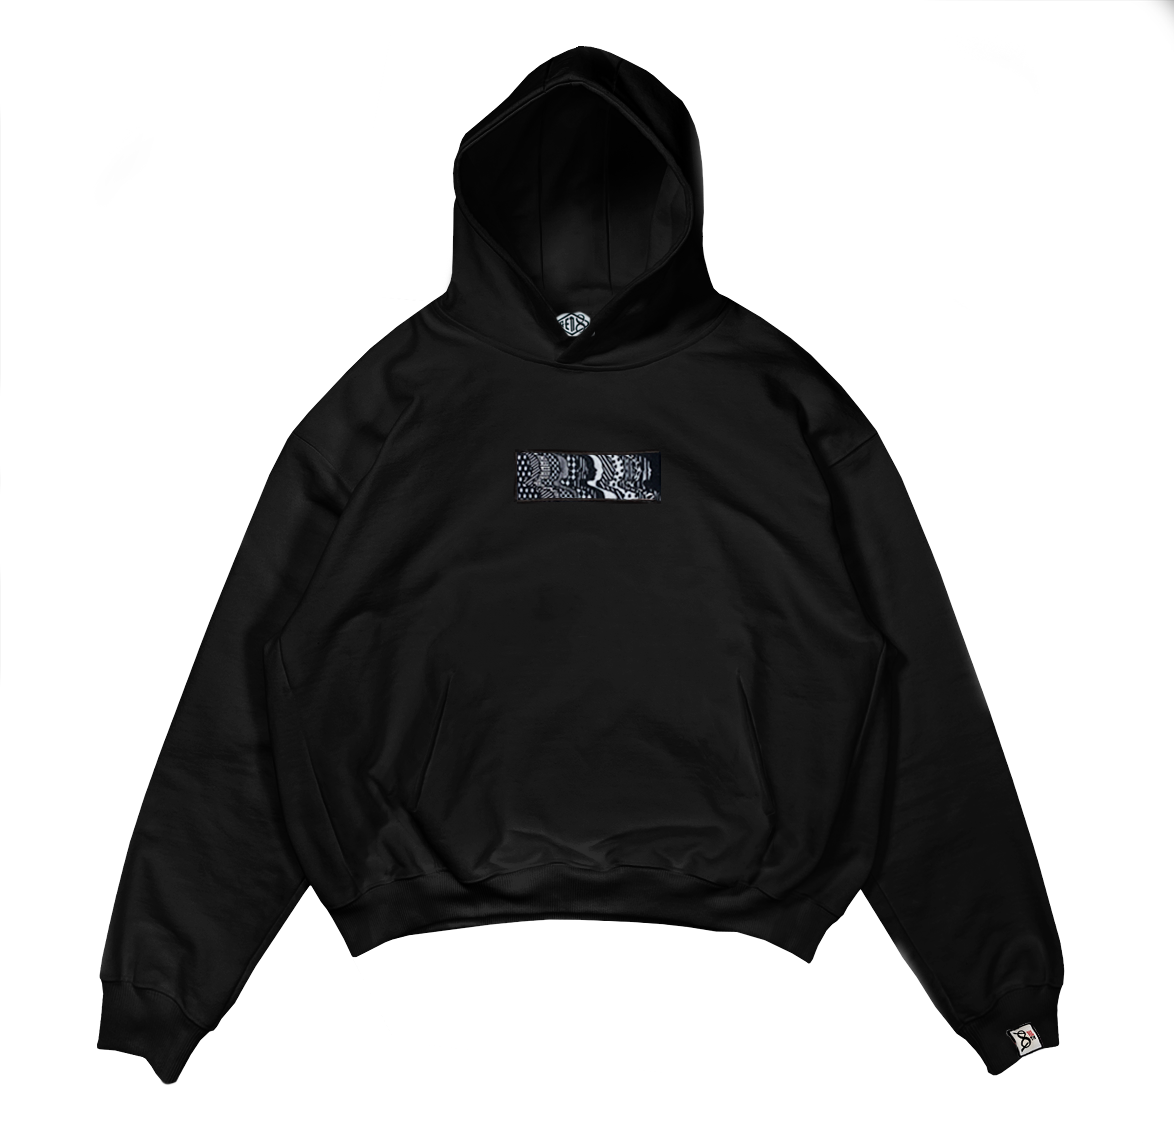 Image of 8th Dimension Black Hoodie